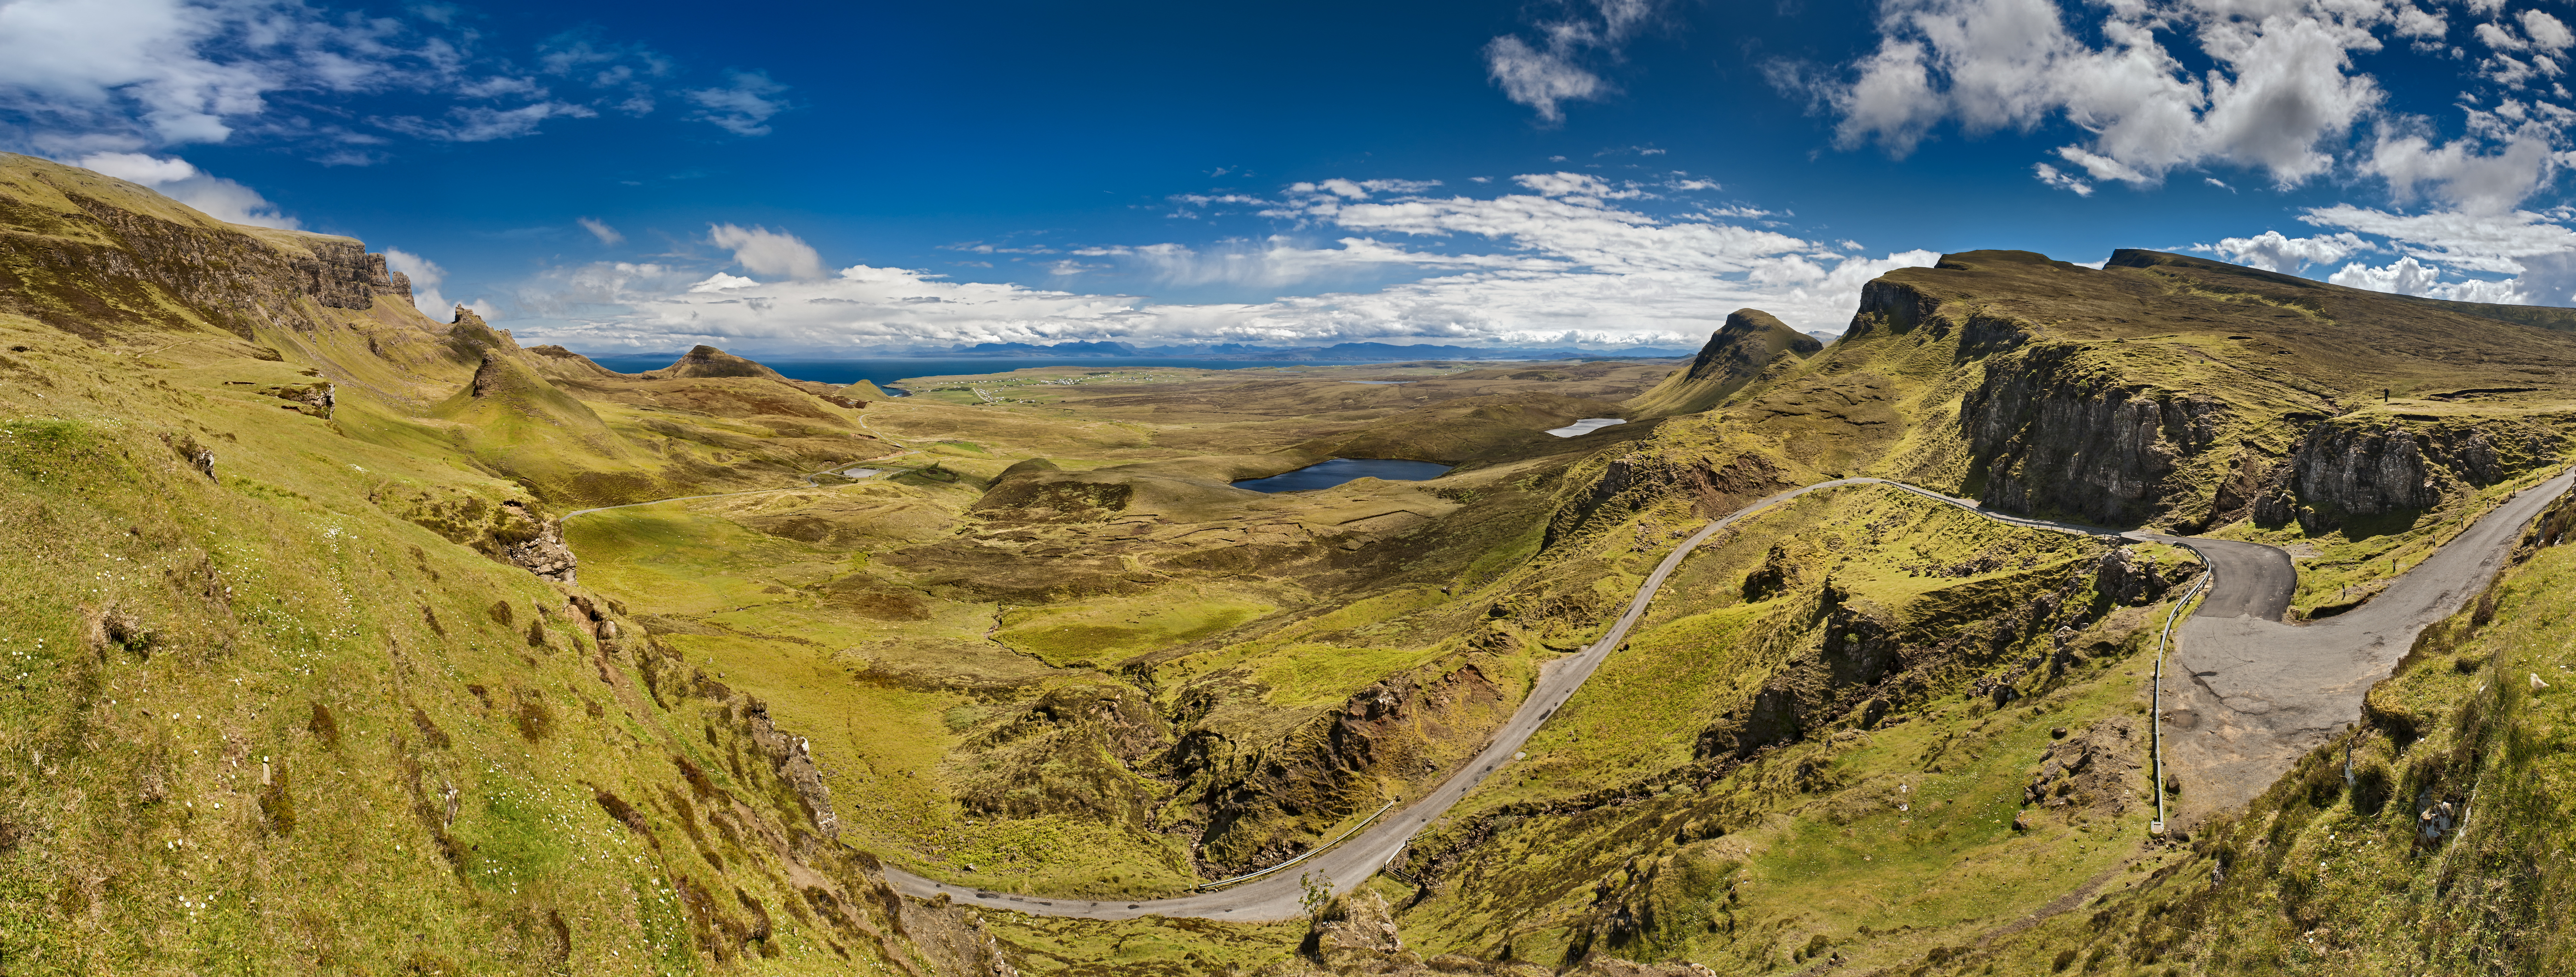 File Quiraing Isle Of Skye Pano Jpg Wikimedia Commons